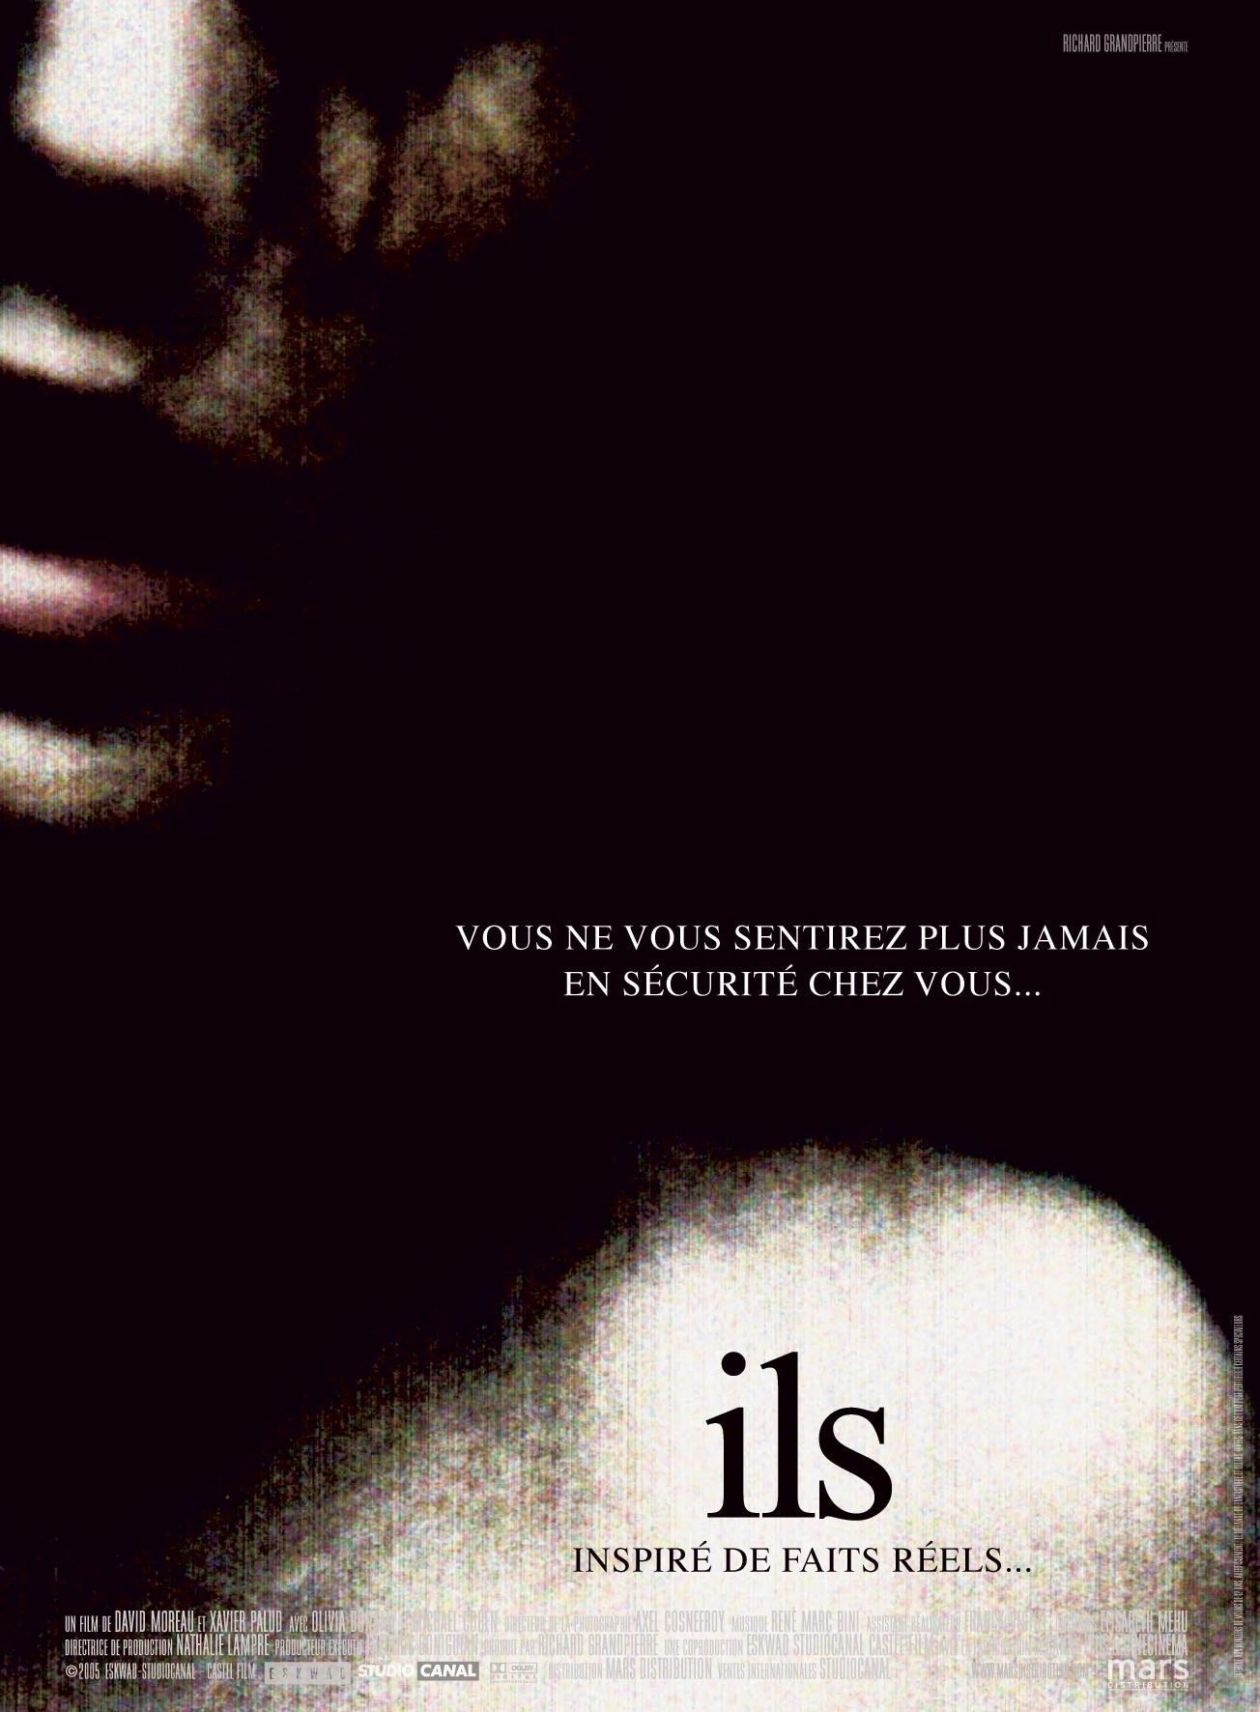 There's No Place Like Home: Class, Conflict and Violence in Ils (2006)